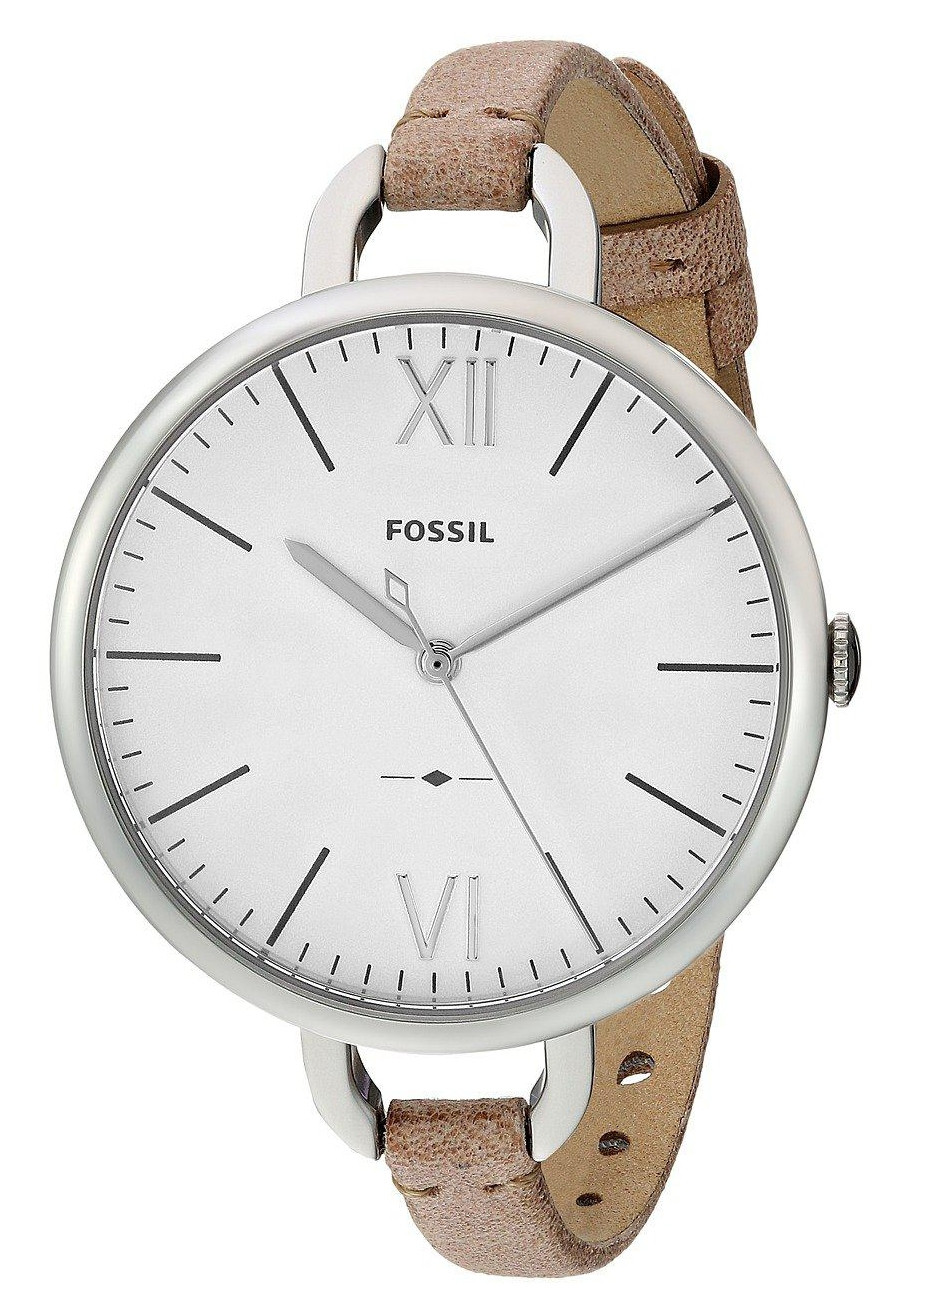 Fossil Women's Annette White Dial Brown Leather Watch ES4357